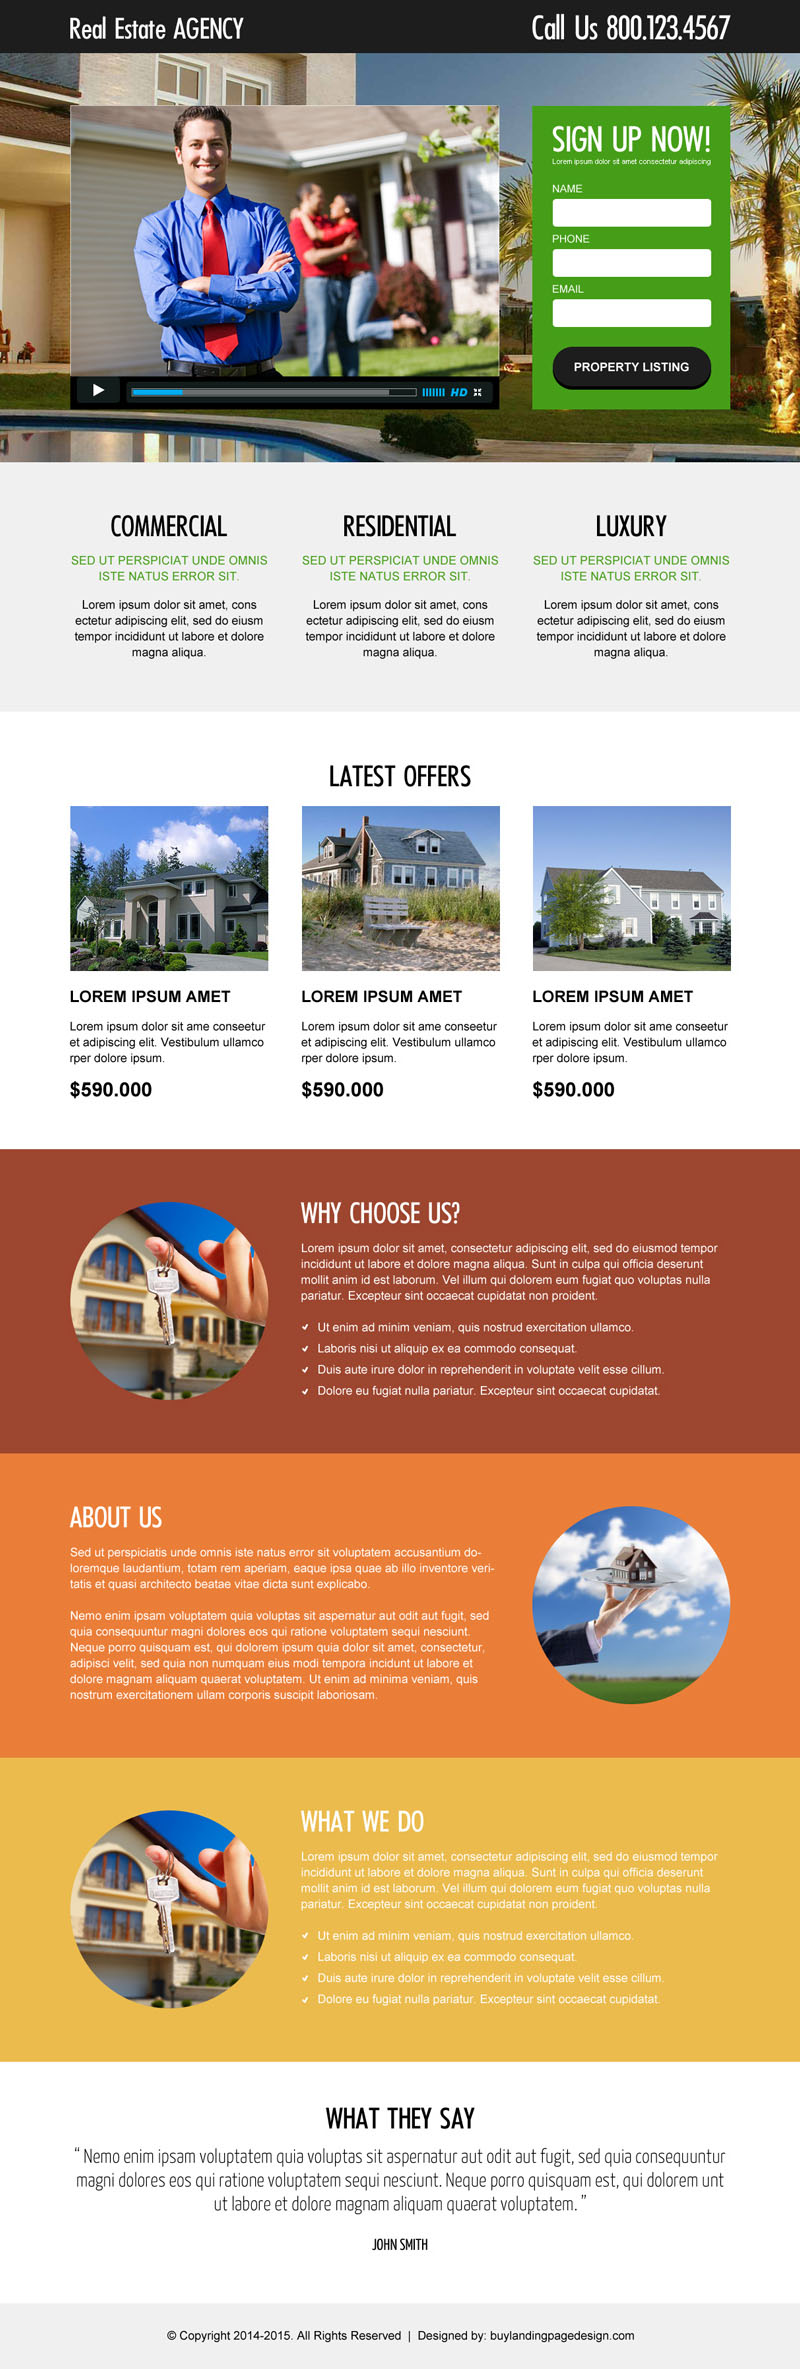 best real estate video responsive lead capture landing page design https://www.buylandingpagedesign.com/buy/best-real-estate-video-responsive-lead-capture-landing-page-design/1444